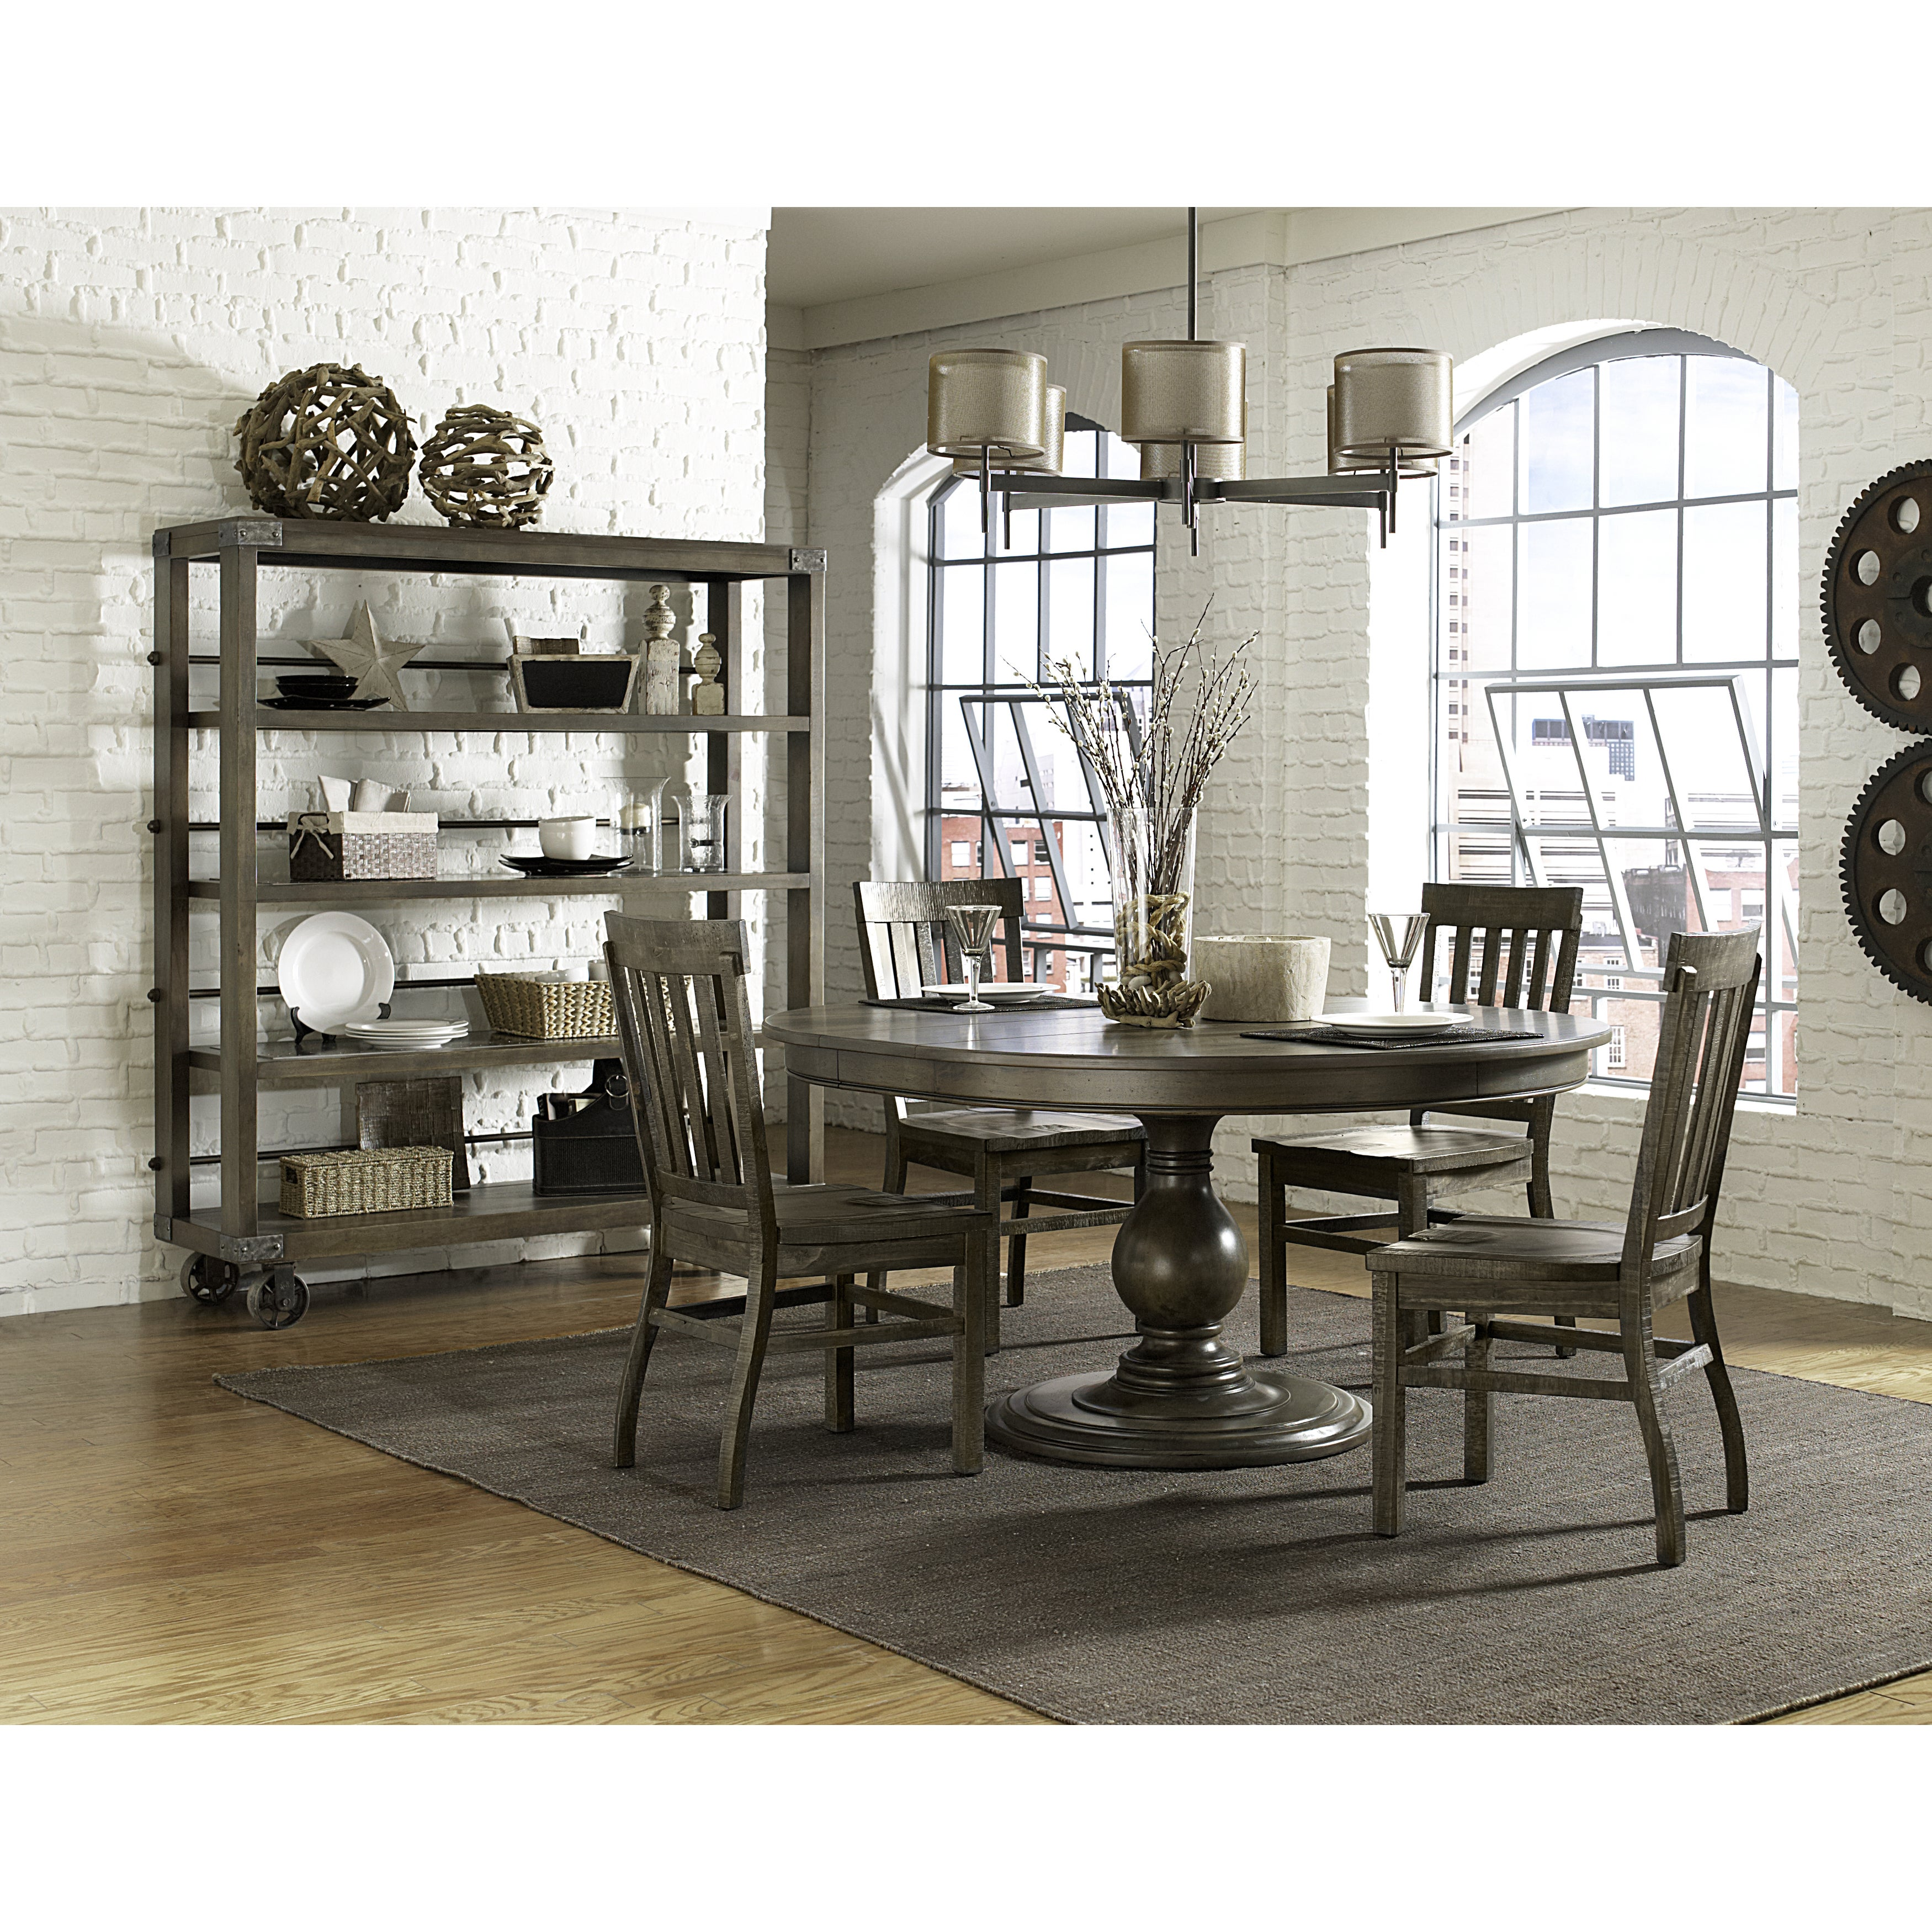 Magnussen D2471 Karlin Wood Round Dining Table With Top Brown